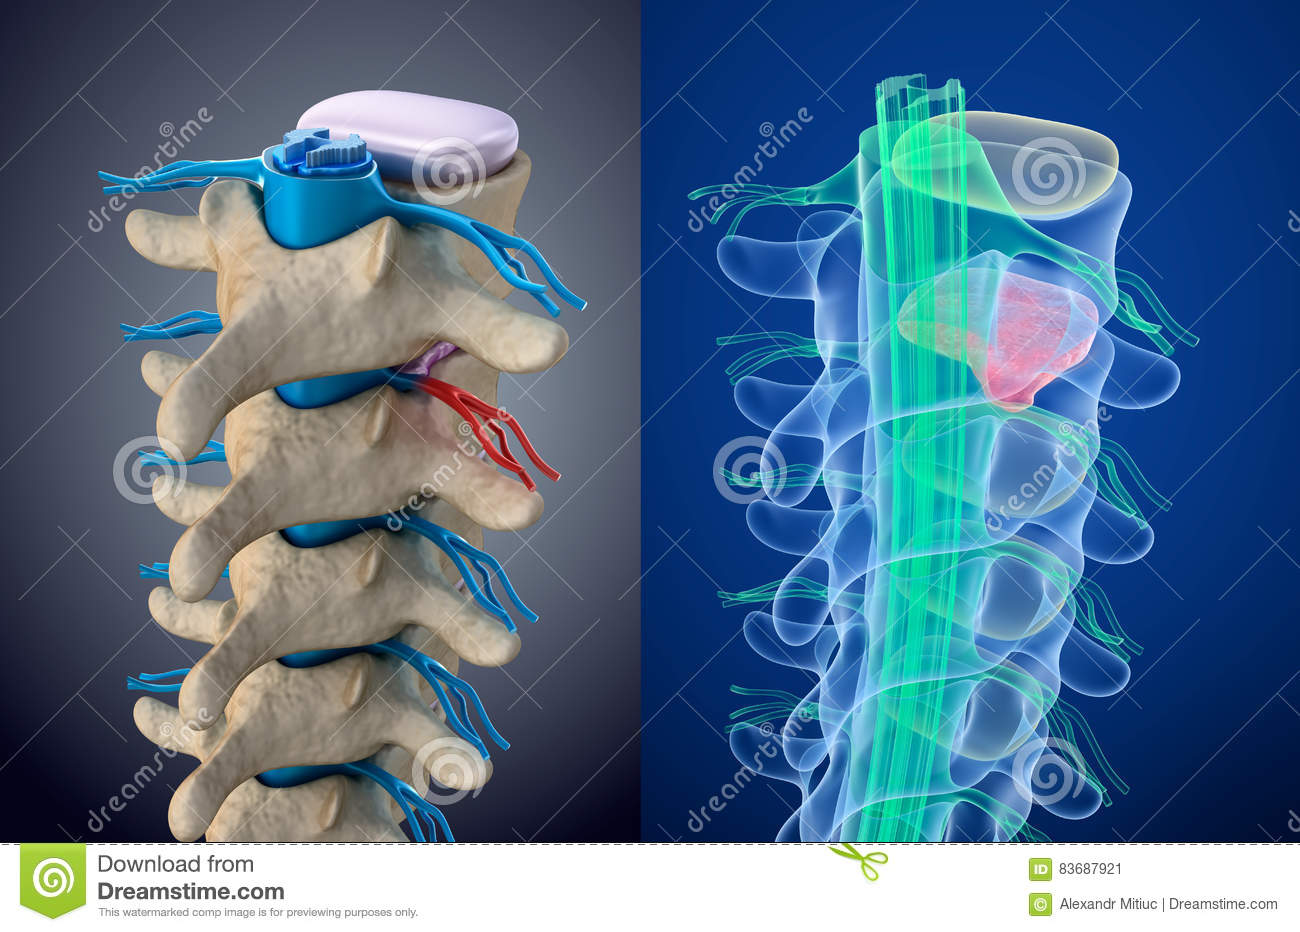 Spinal cord under pressure of bulging disc. Xray view. Medically accurate illustration